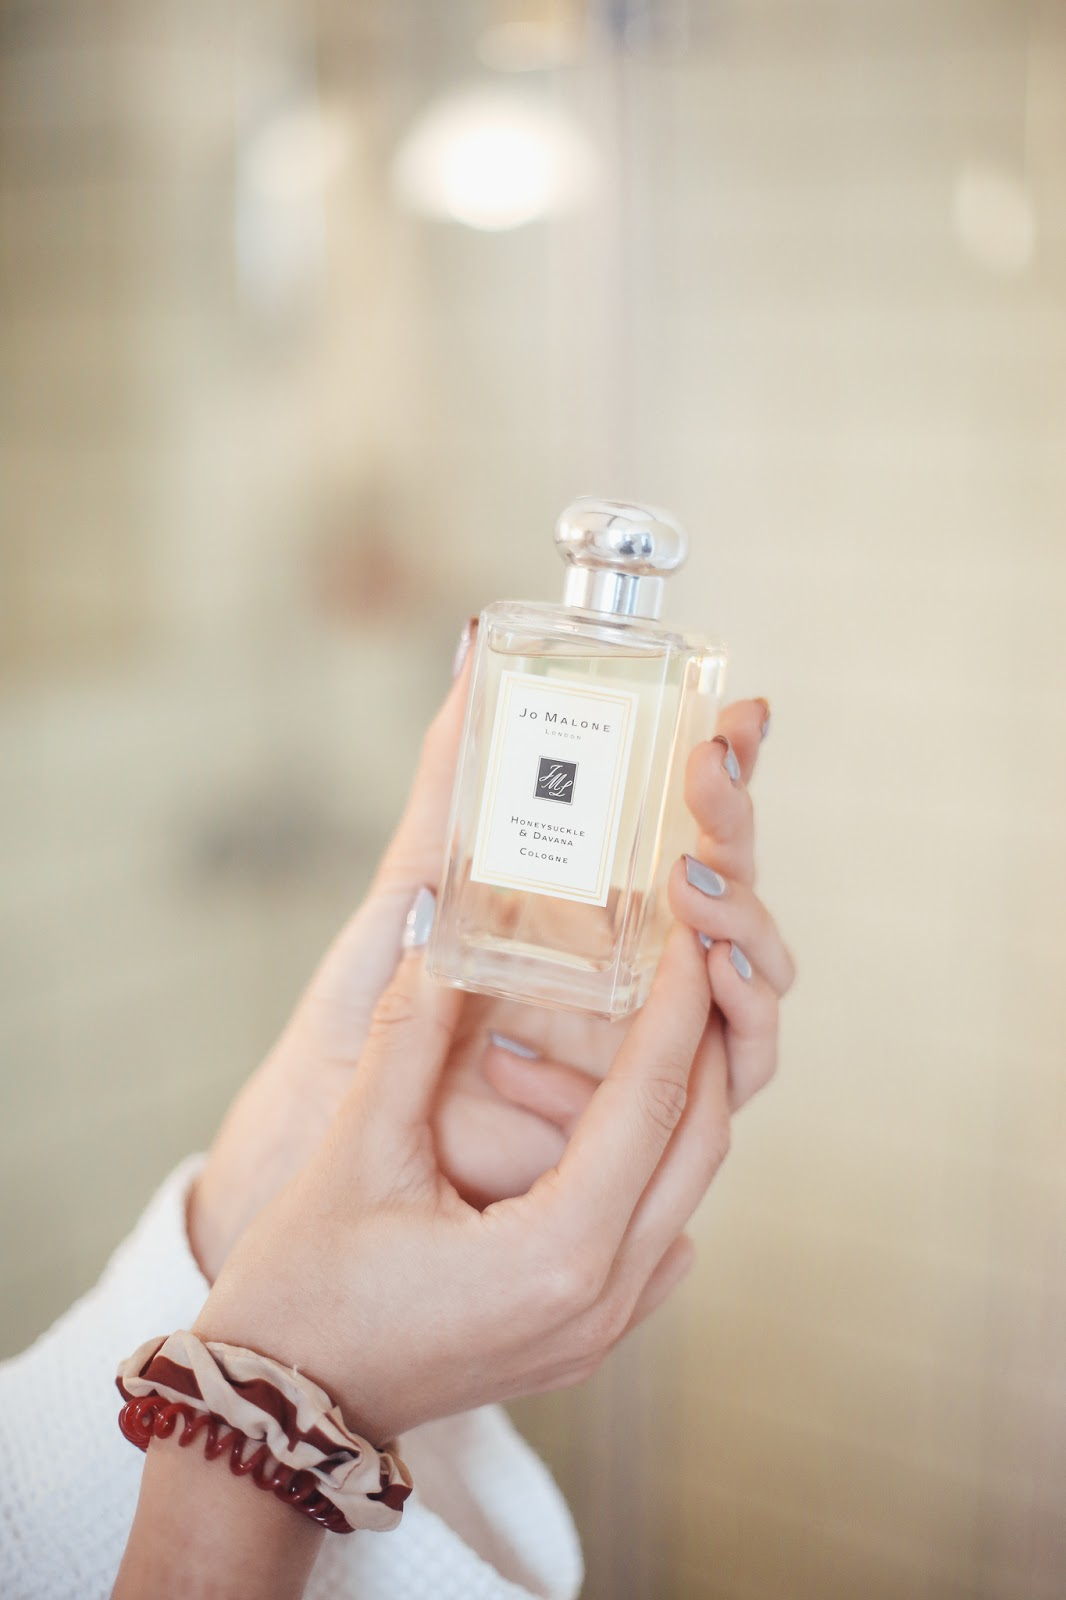 jo malone honesuckle and davana perfume